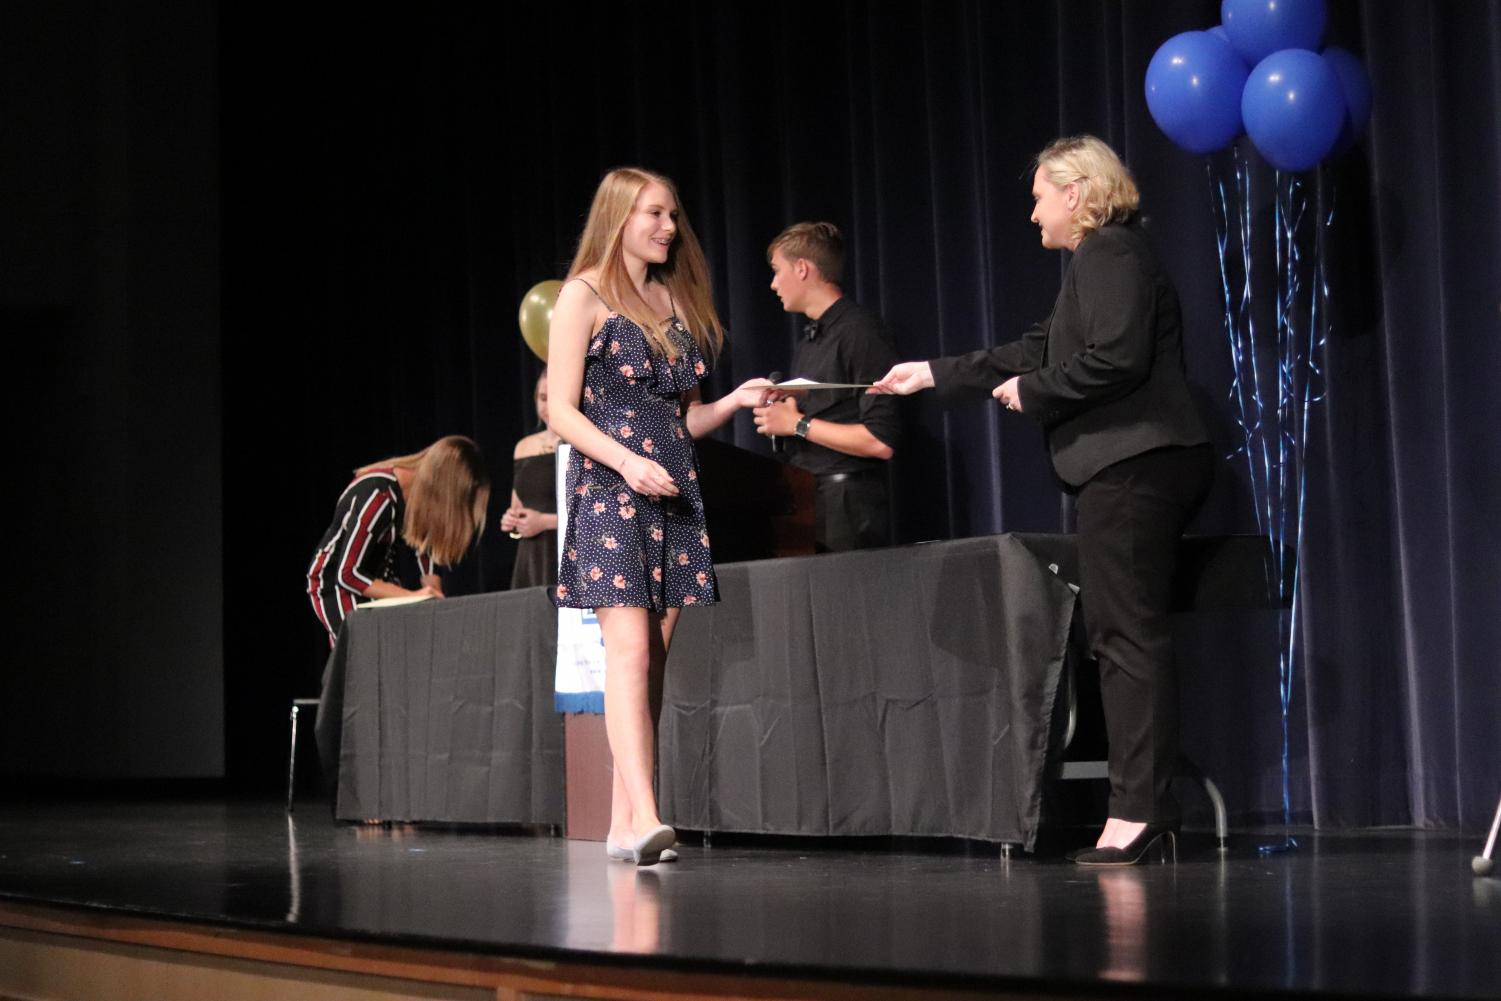 Laura Darty walks up on stage during the ceremony to receive her award. 72 members were inducted this year.